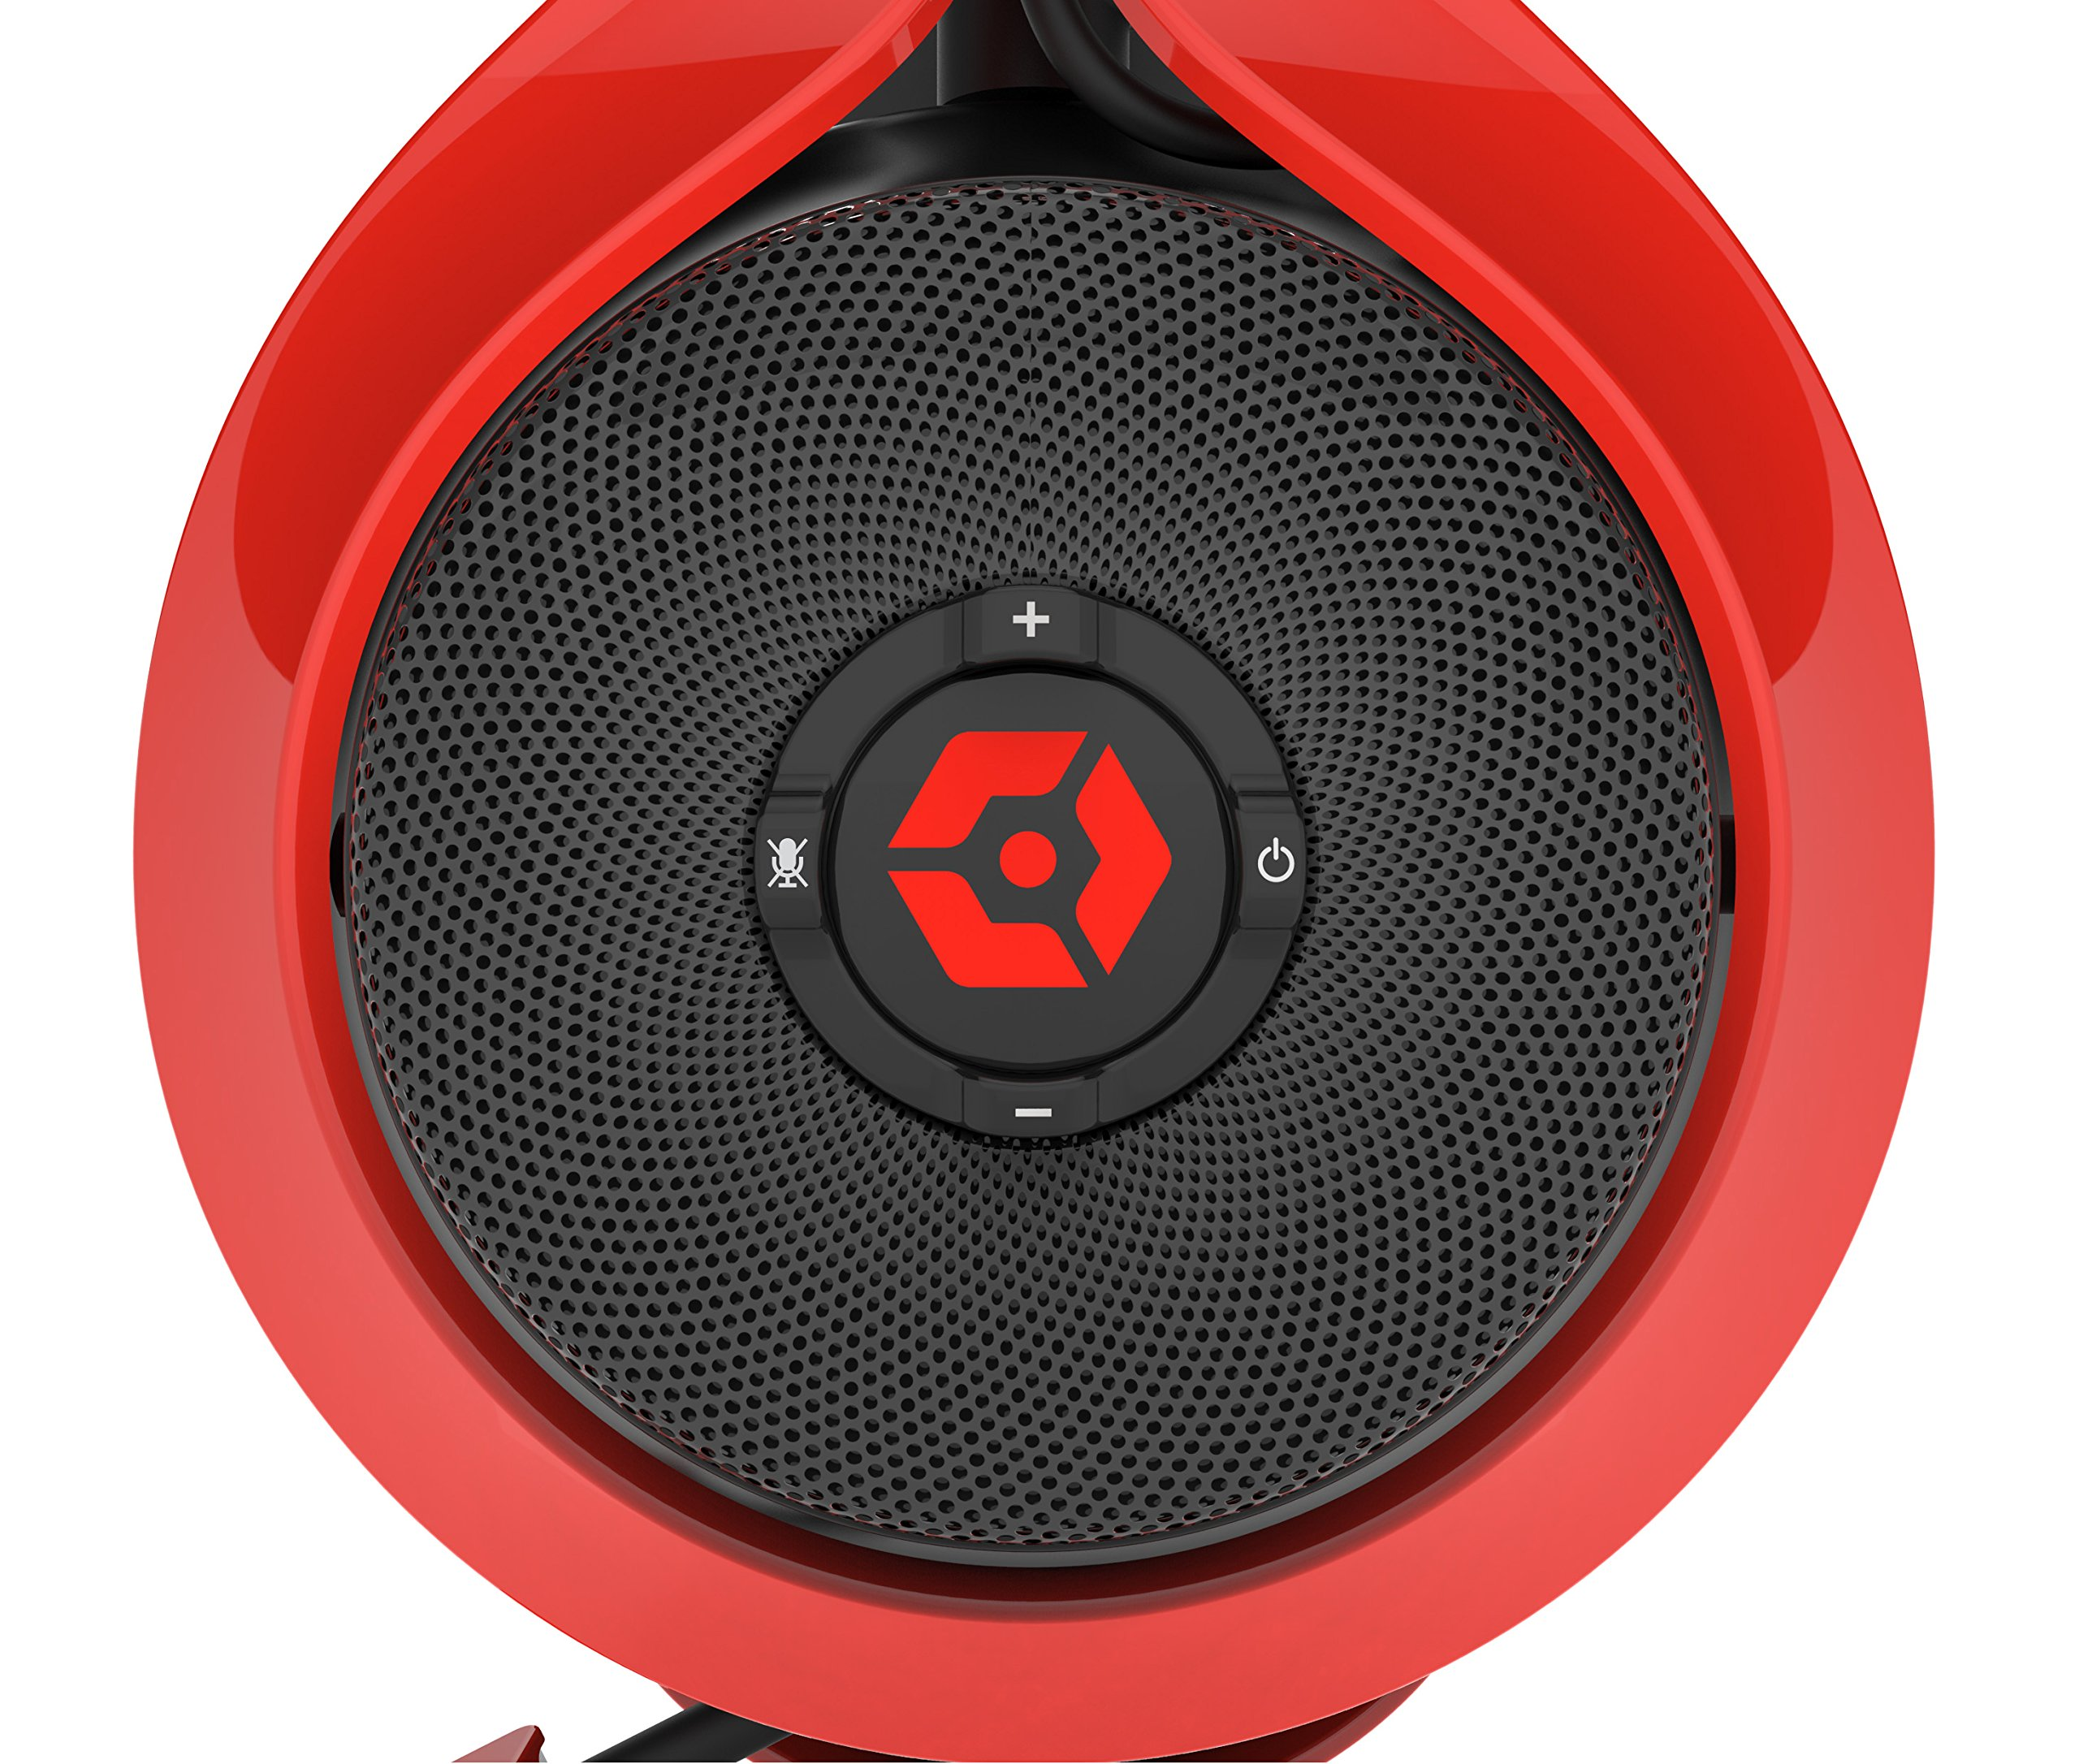 Gioteck FL-300 Wired Stereo Headset with Removable Bluetooth Speakers - PlayStation 4 - Red by Gioteck (Image #5)